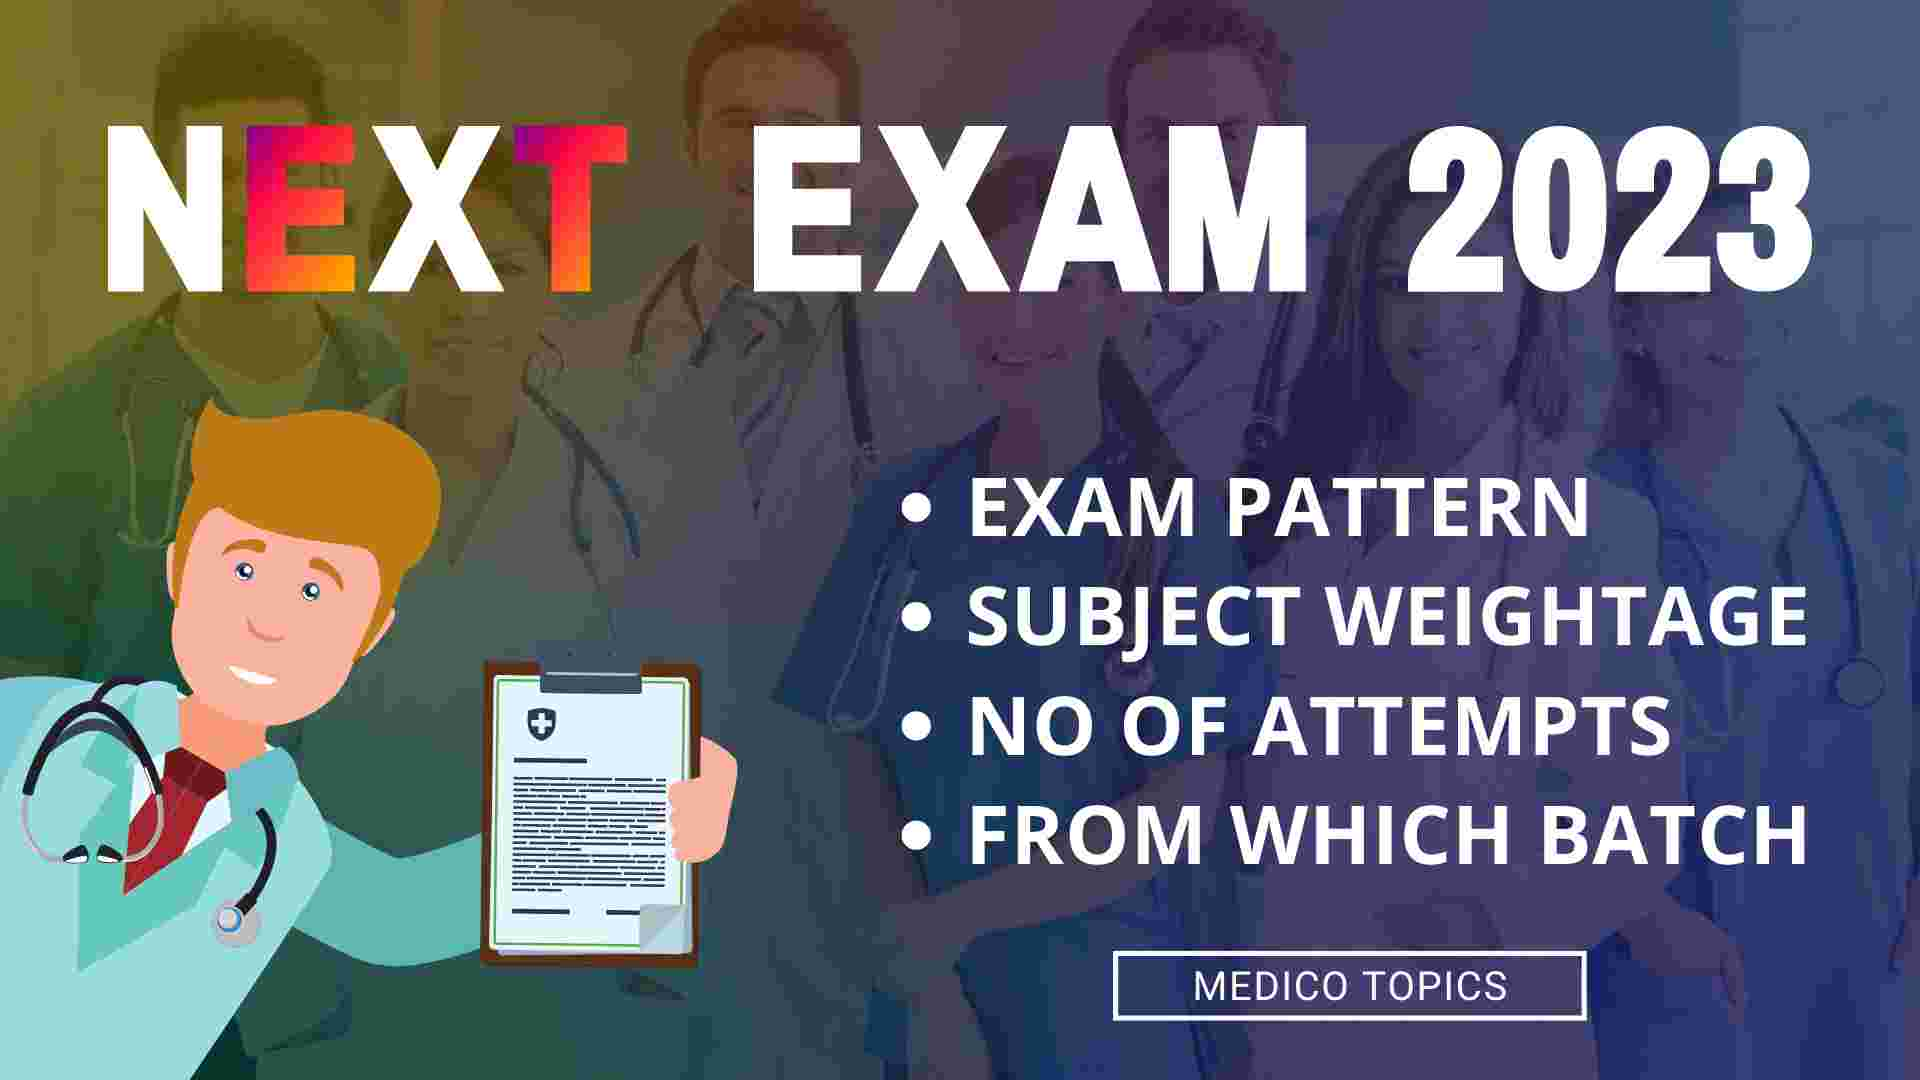 NEXT Exam 2023 for Medical students - Exam pattern, Subject wise weightage